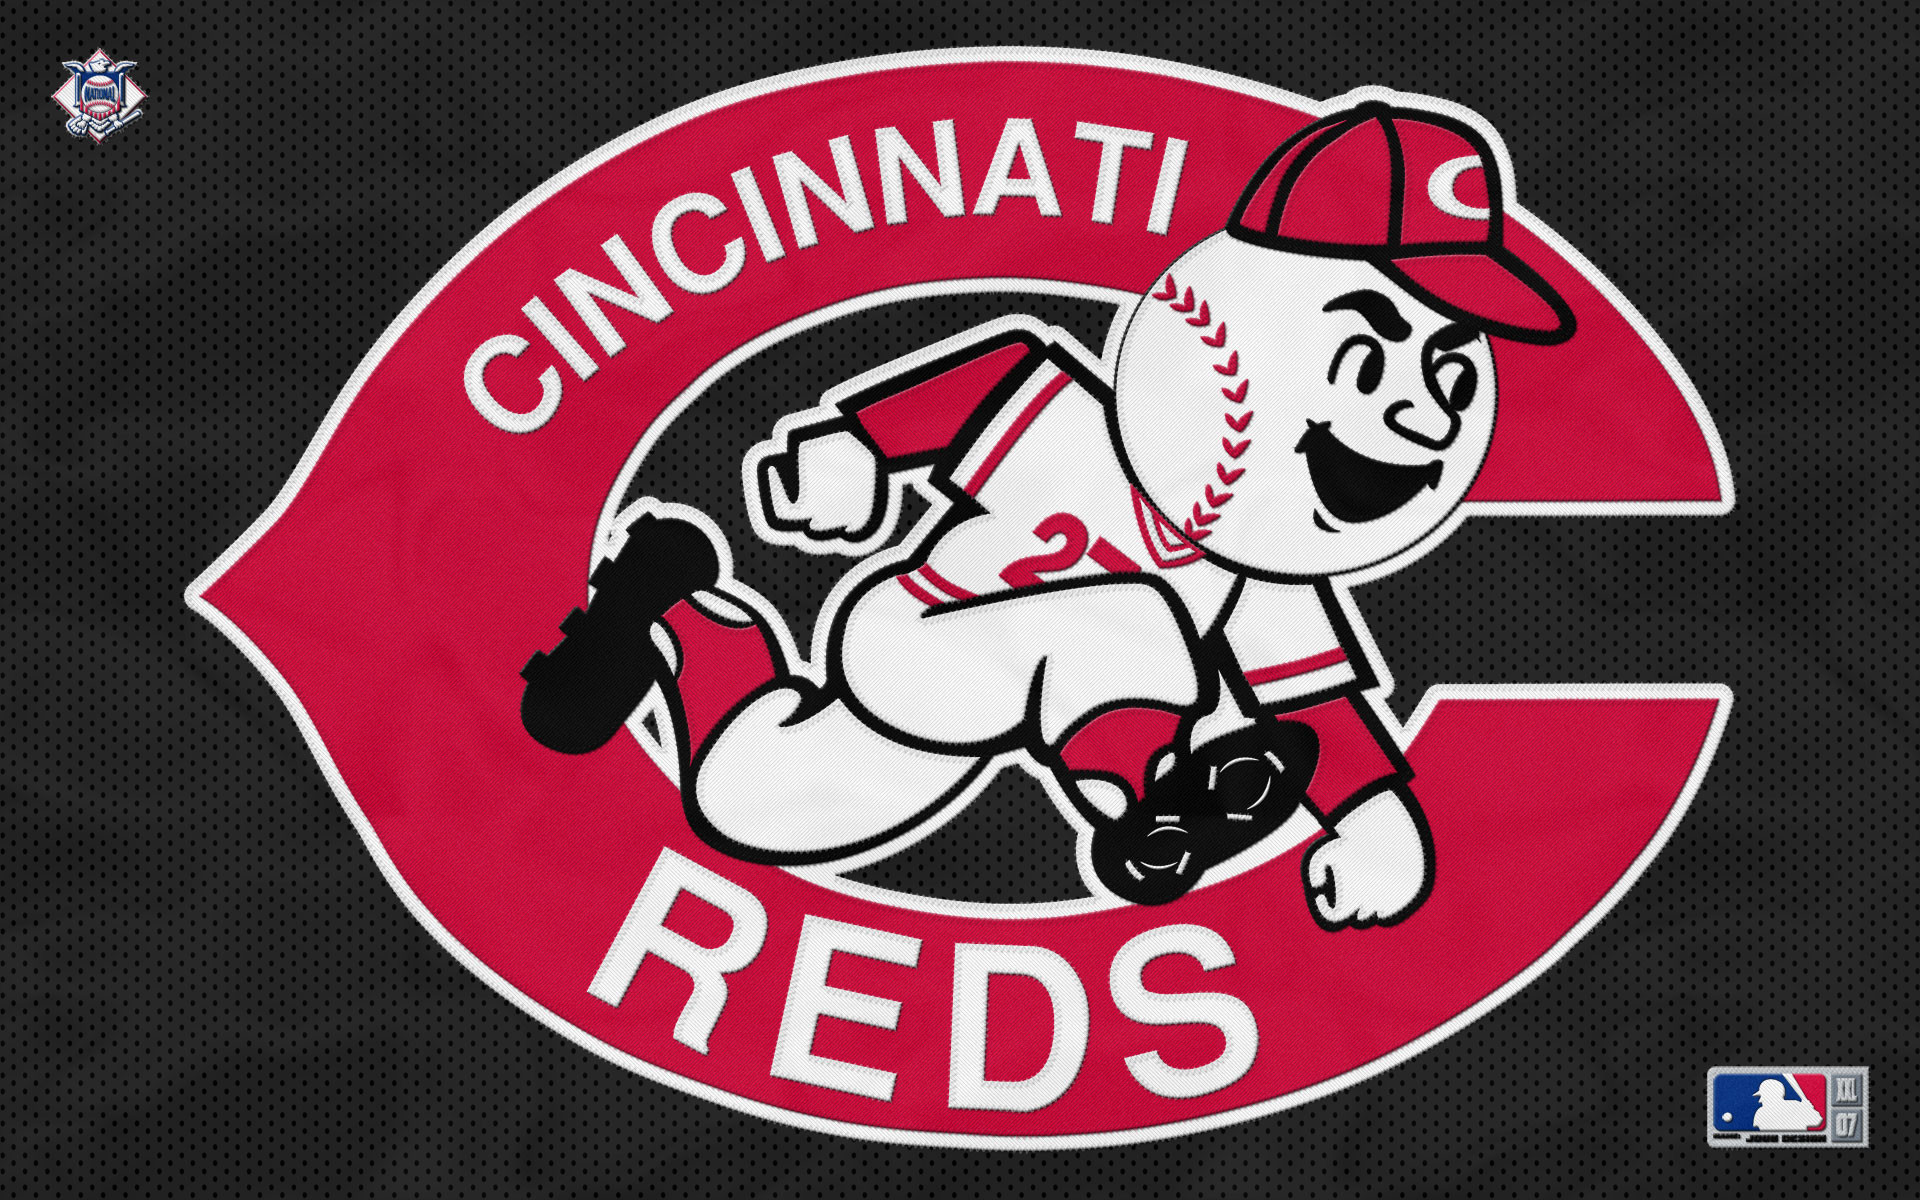 Related Wallpapers from NY Giants Wallpaper. Cincinnati Reds Wallpaper